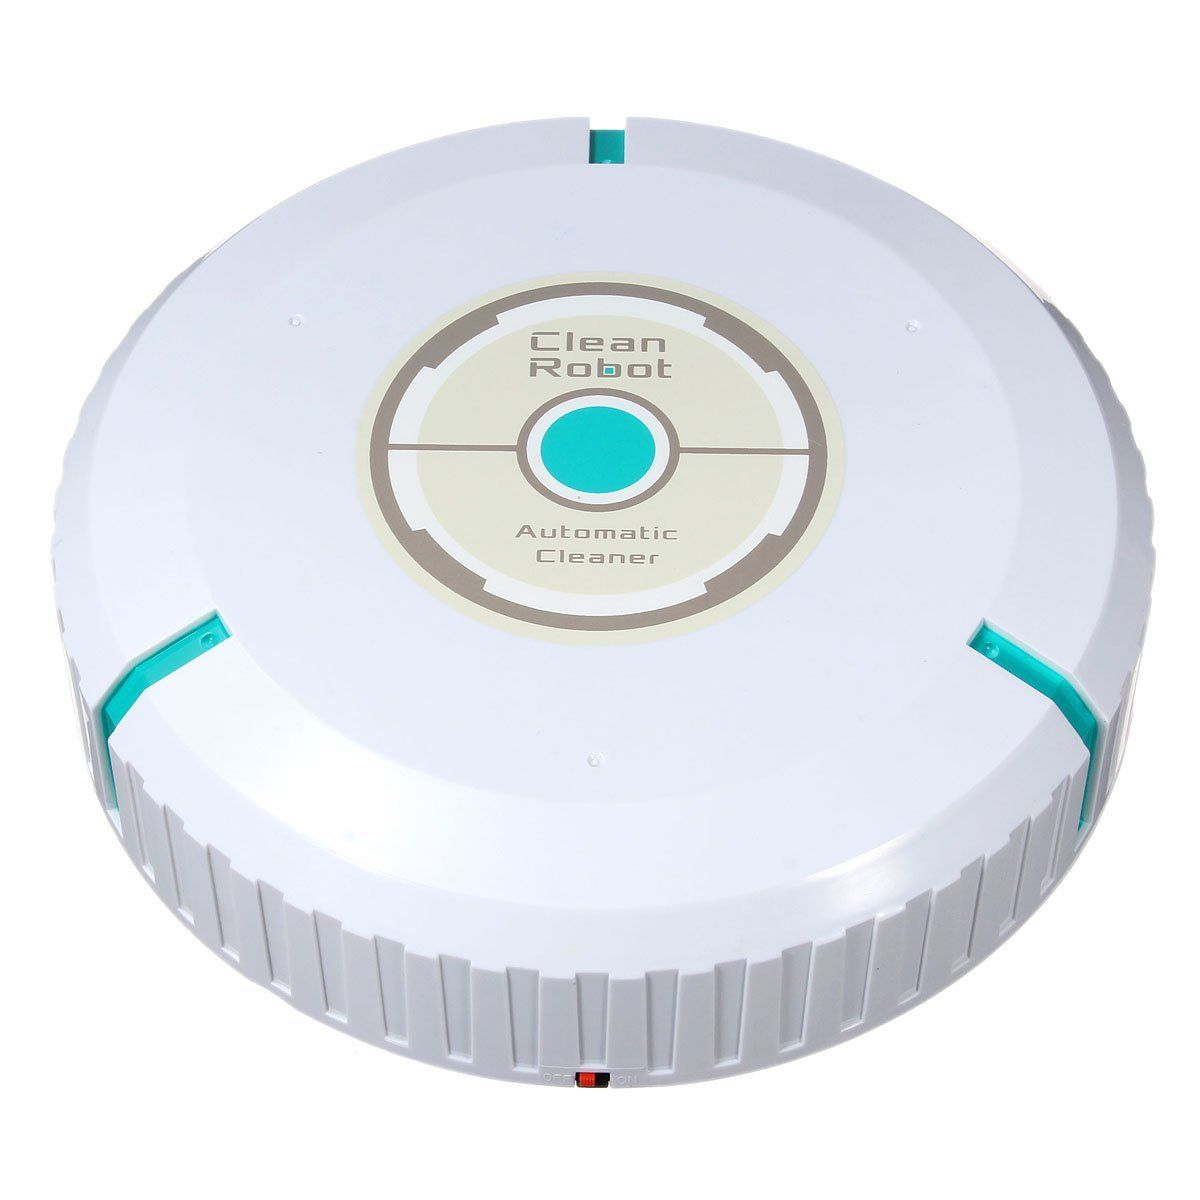 M Way 9 inch Wireless Home Robotic Smart Auto Cleaner